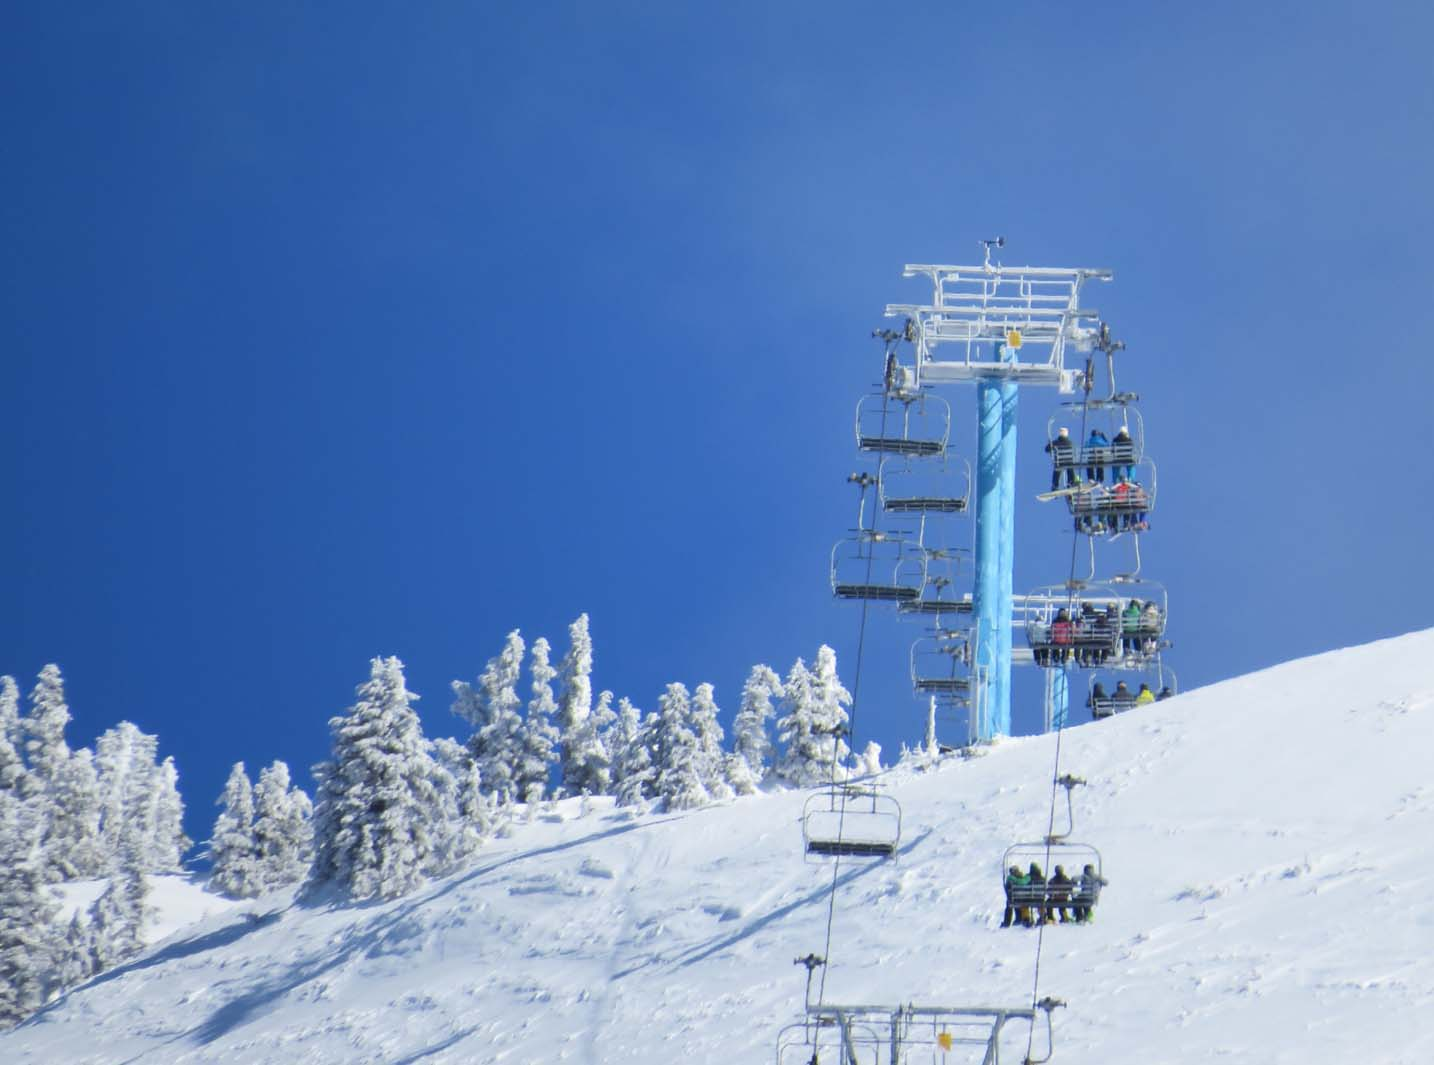 Chairlift at the top of Mount Washington ski resort, Vancouver Island